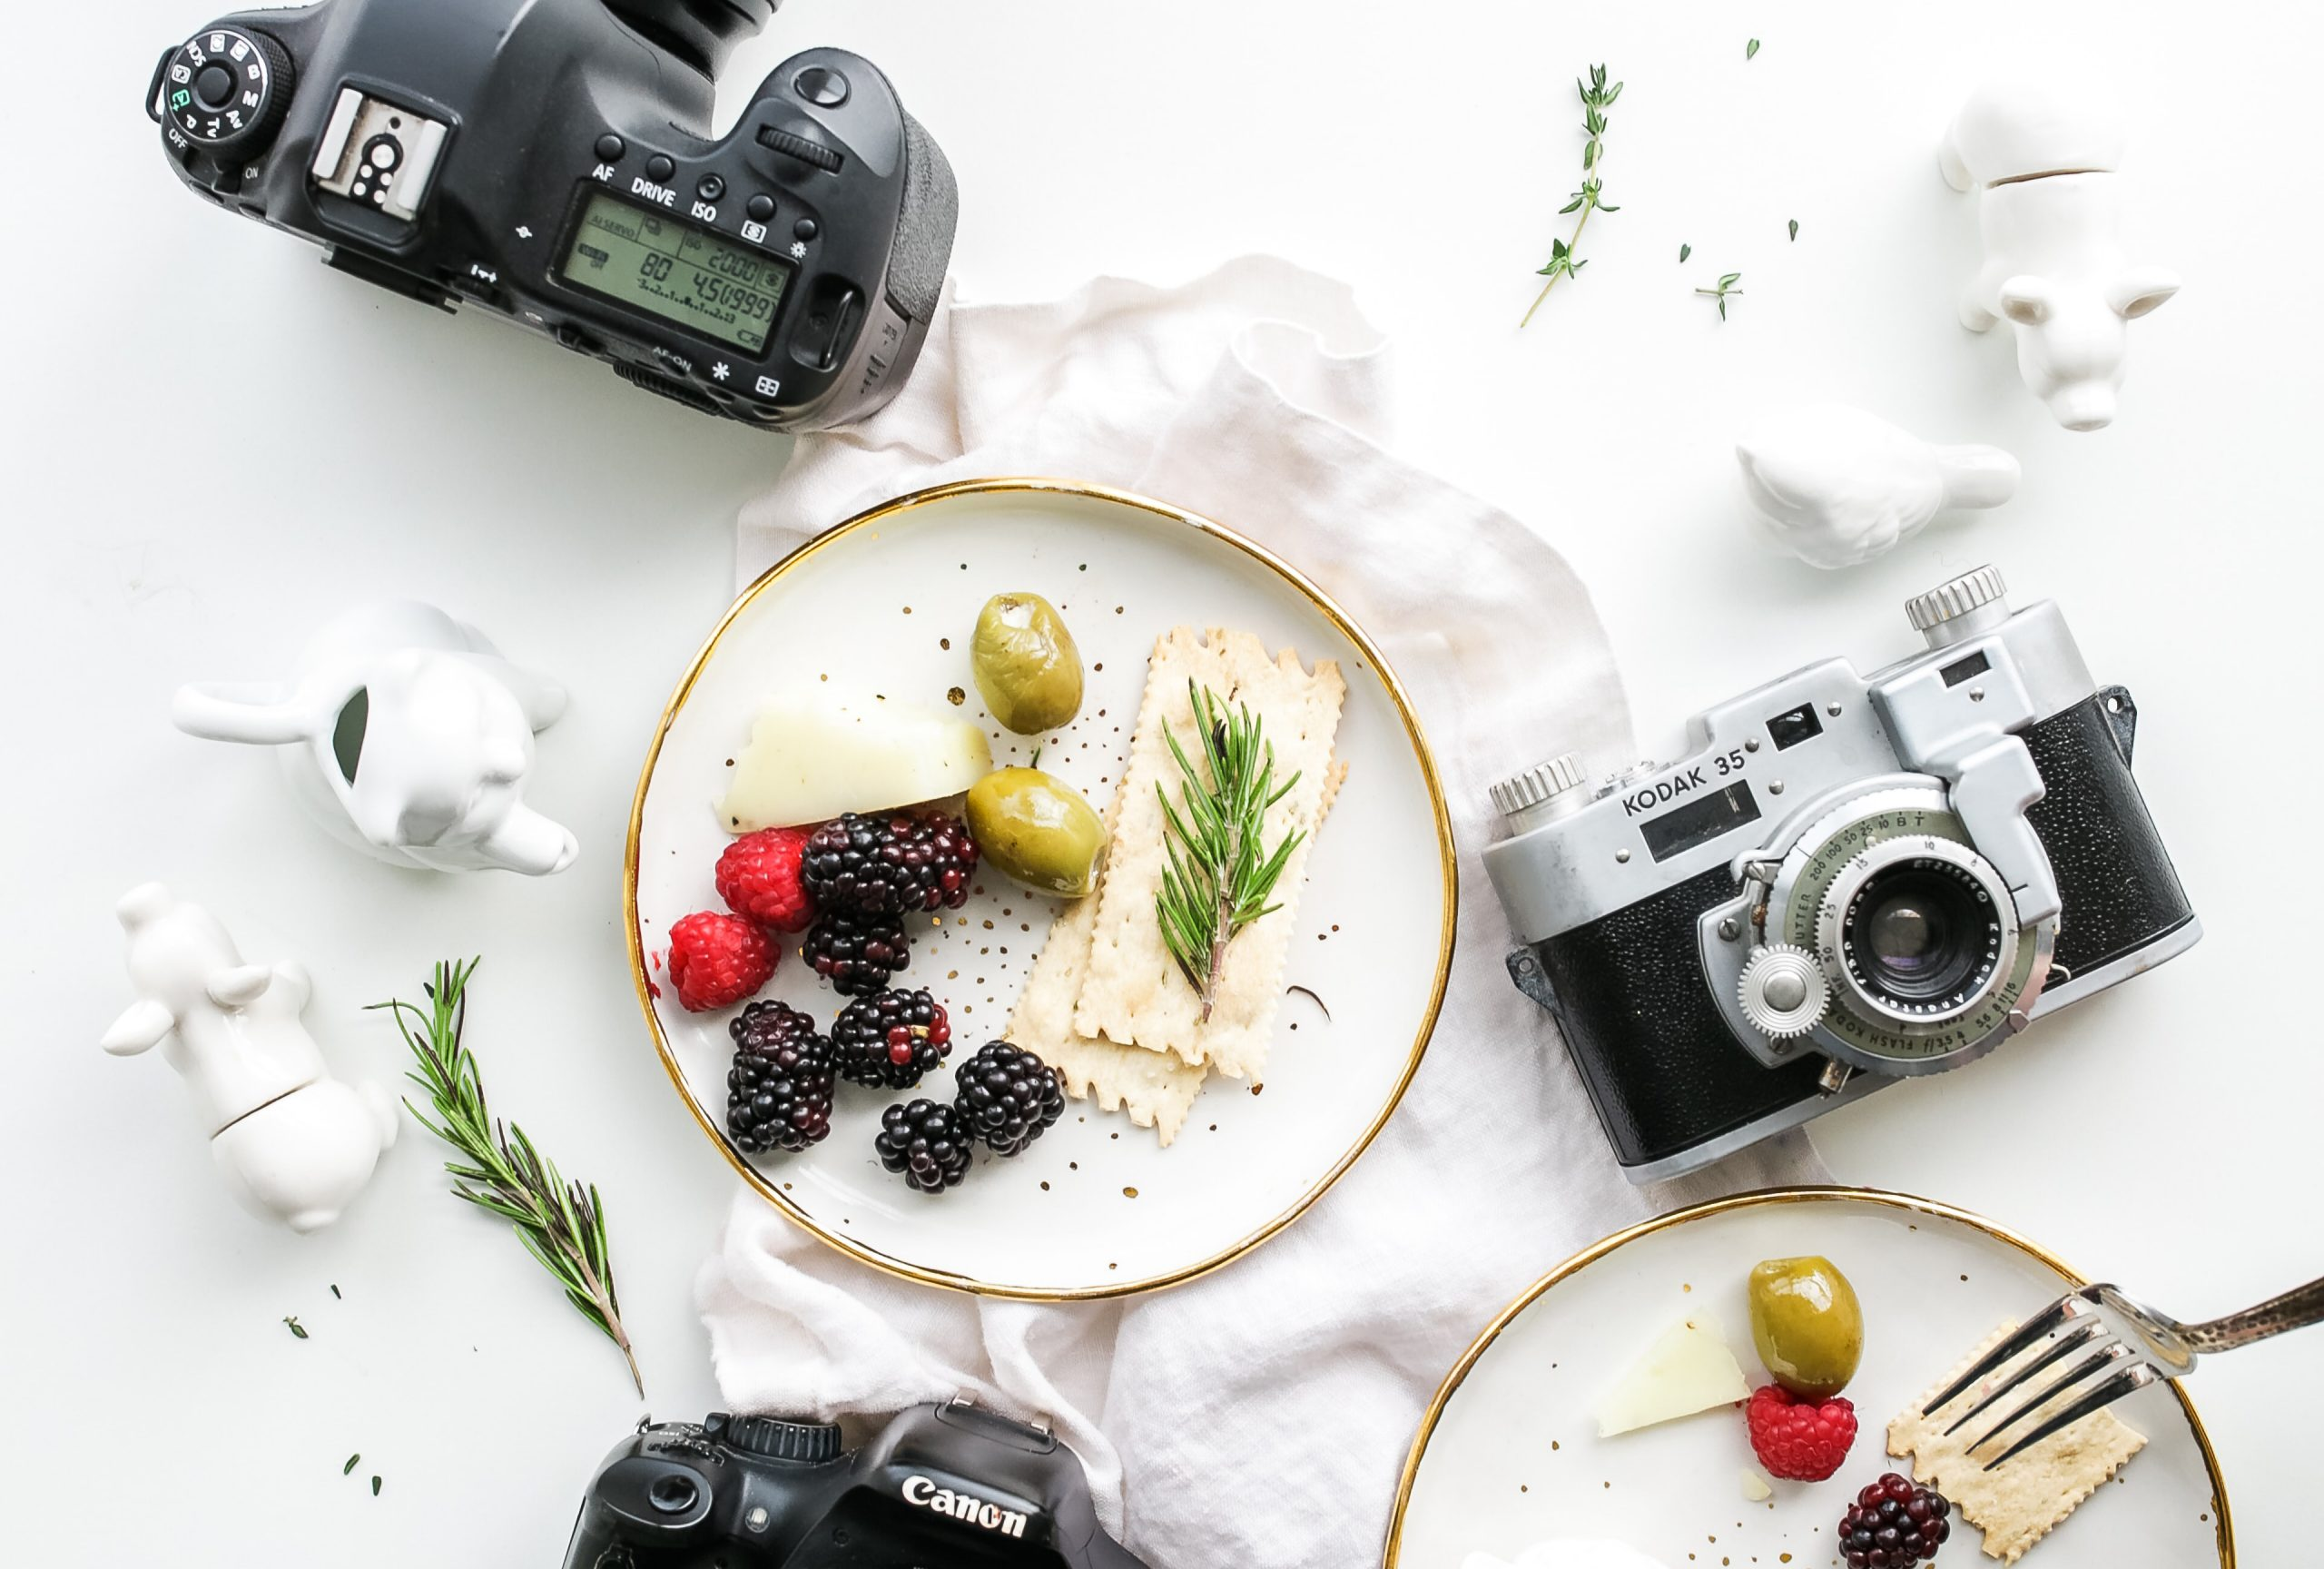 Our top 5 fave paid & free stock photography websites